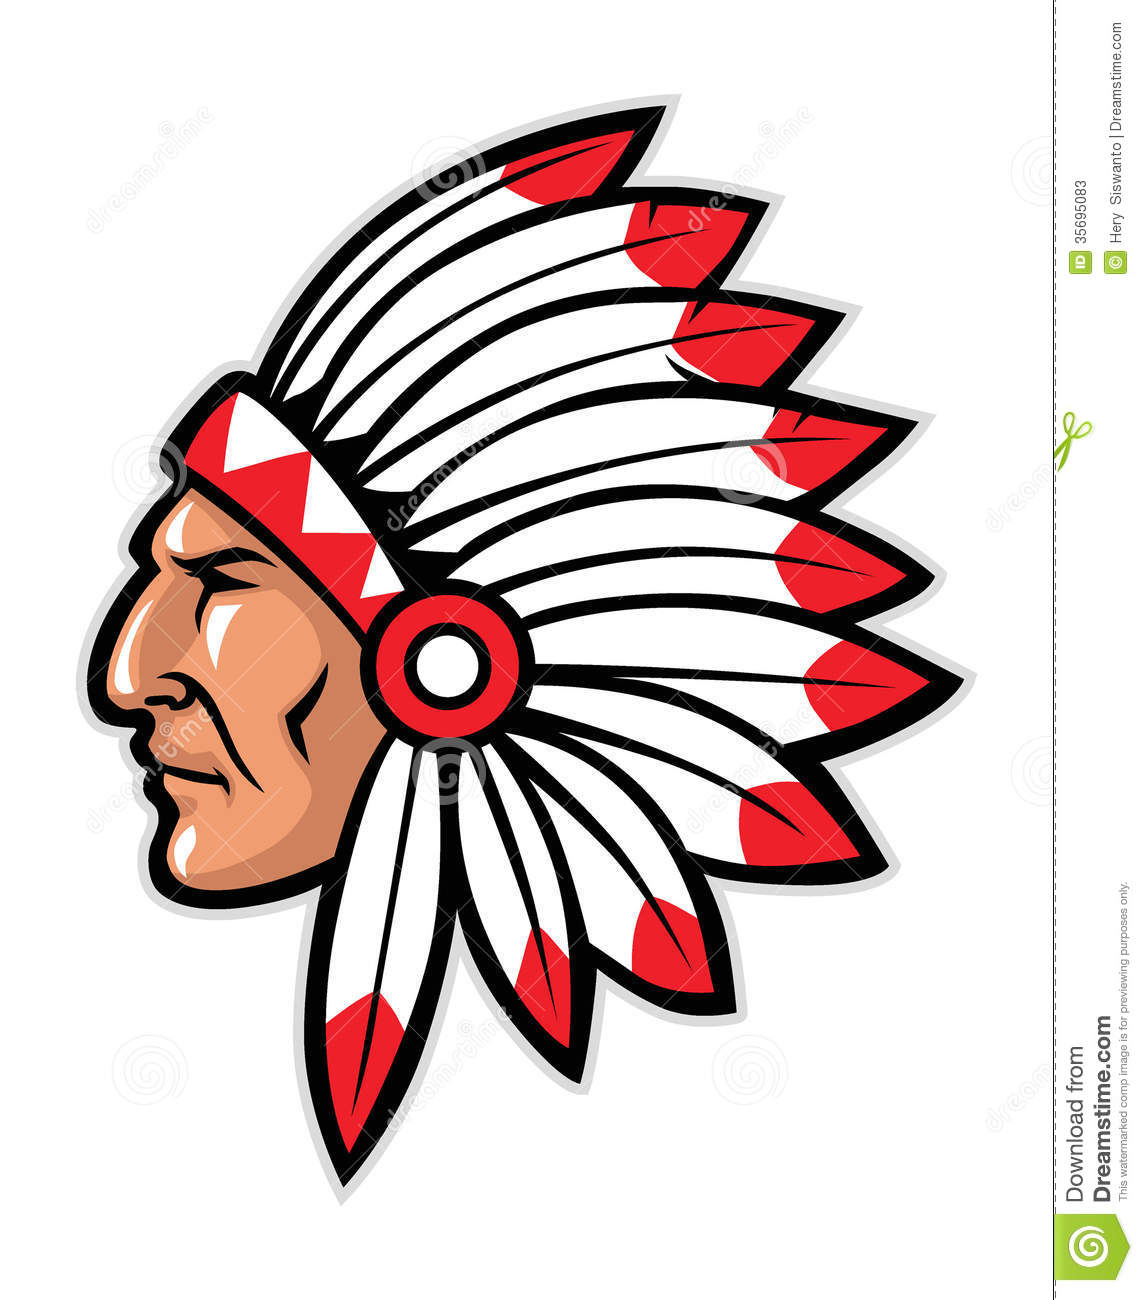 American indian logo clipart png transparent 7+ Indian Headdress Clipart | ClipartLook png transparent